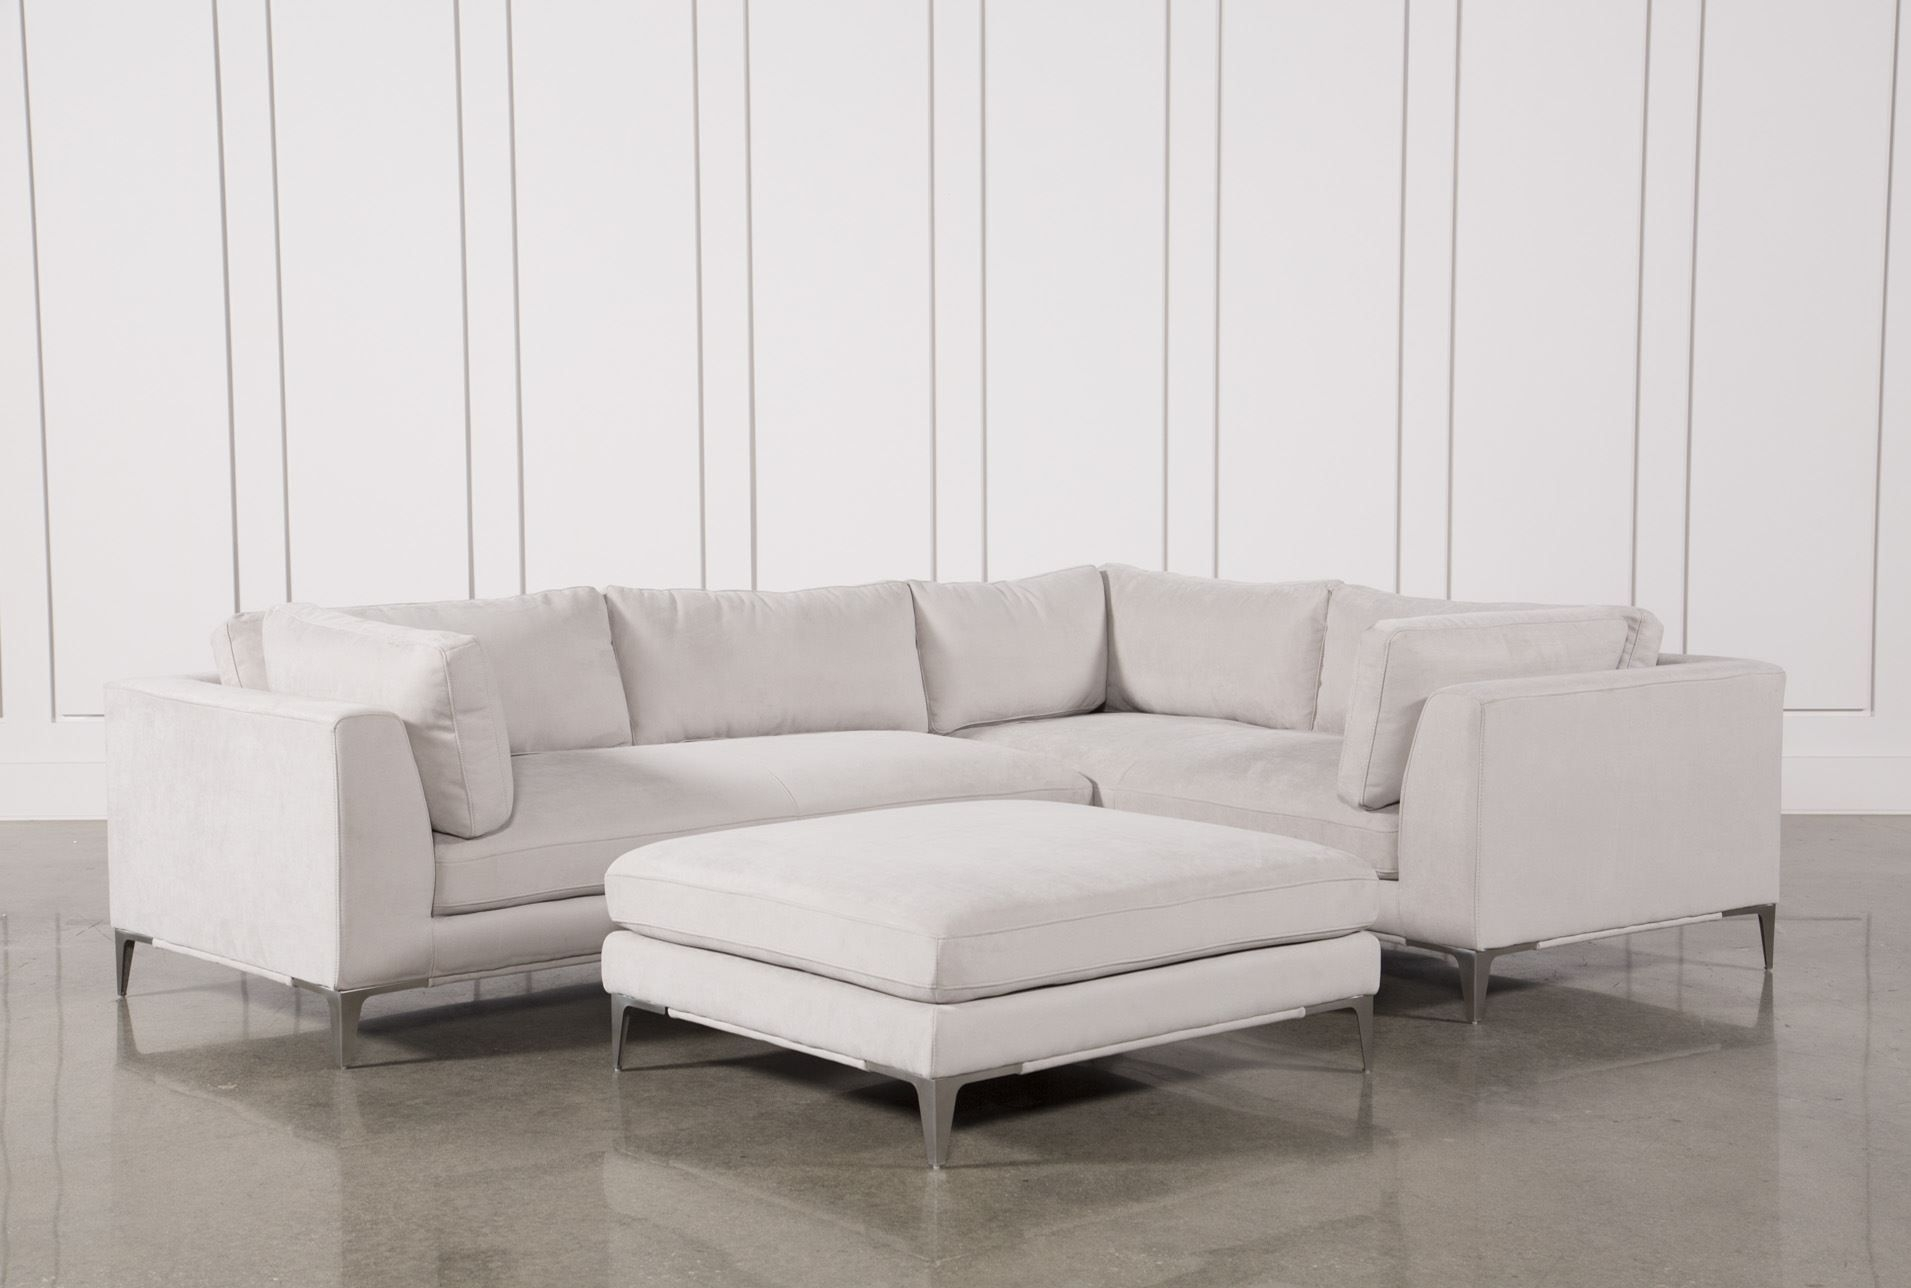 Apollo Light Grey 2 Piece Sectional W/ottoman | Pinterest | Ottomans regarding Aidan 4 Piece Sectionals (Image 9 of 30)